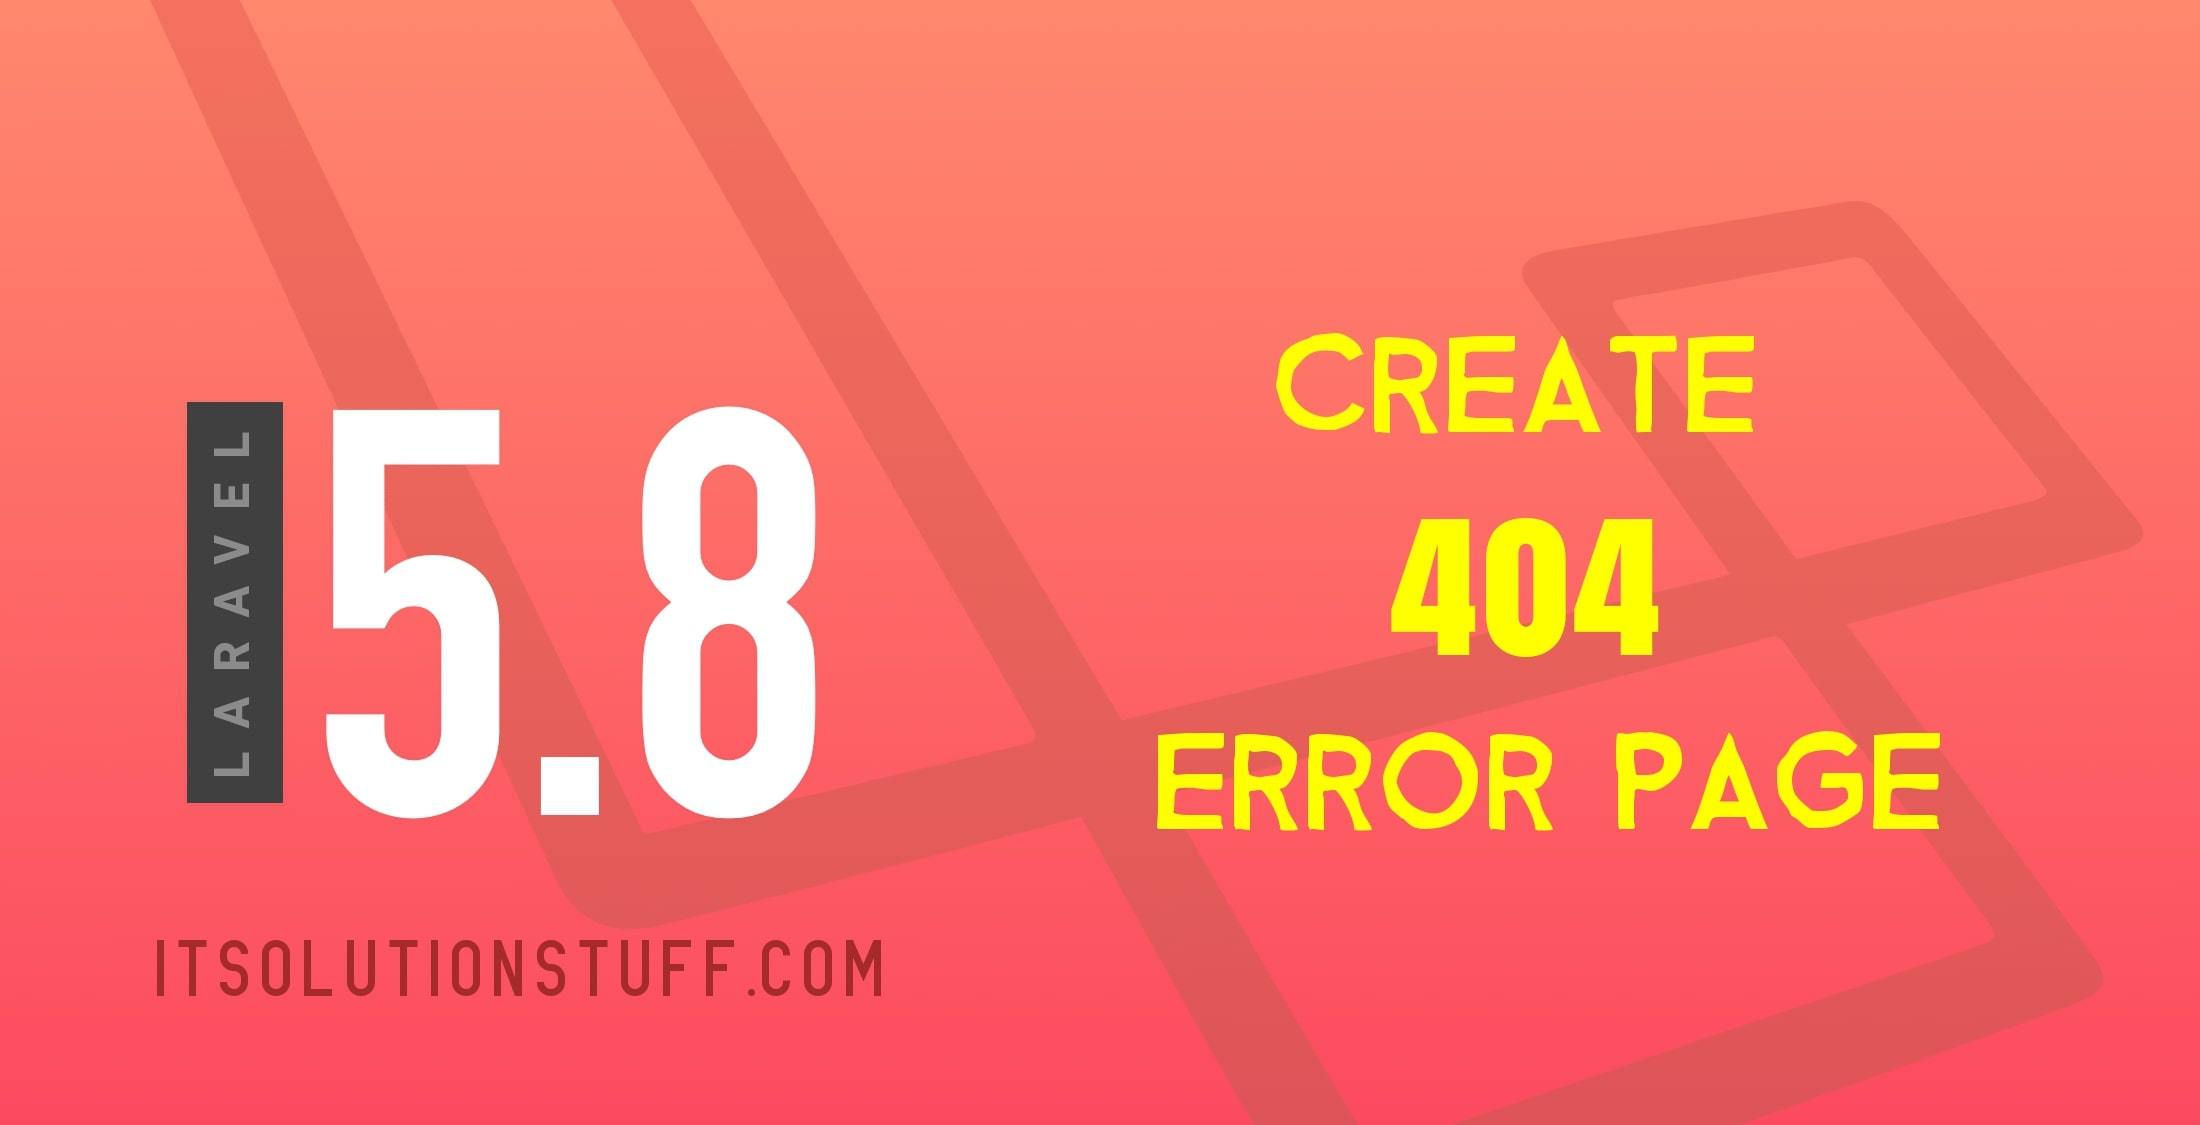 How to create 404 error page in Laravel 5.8?